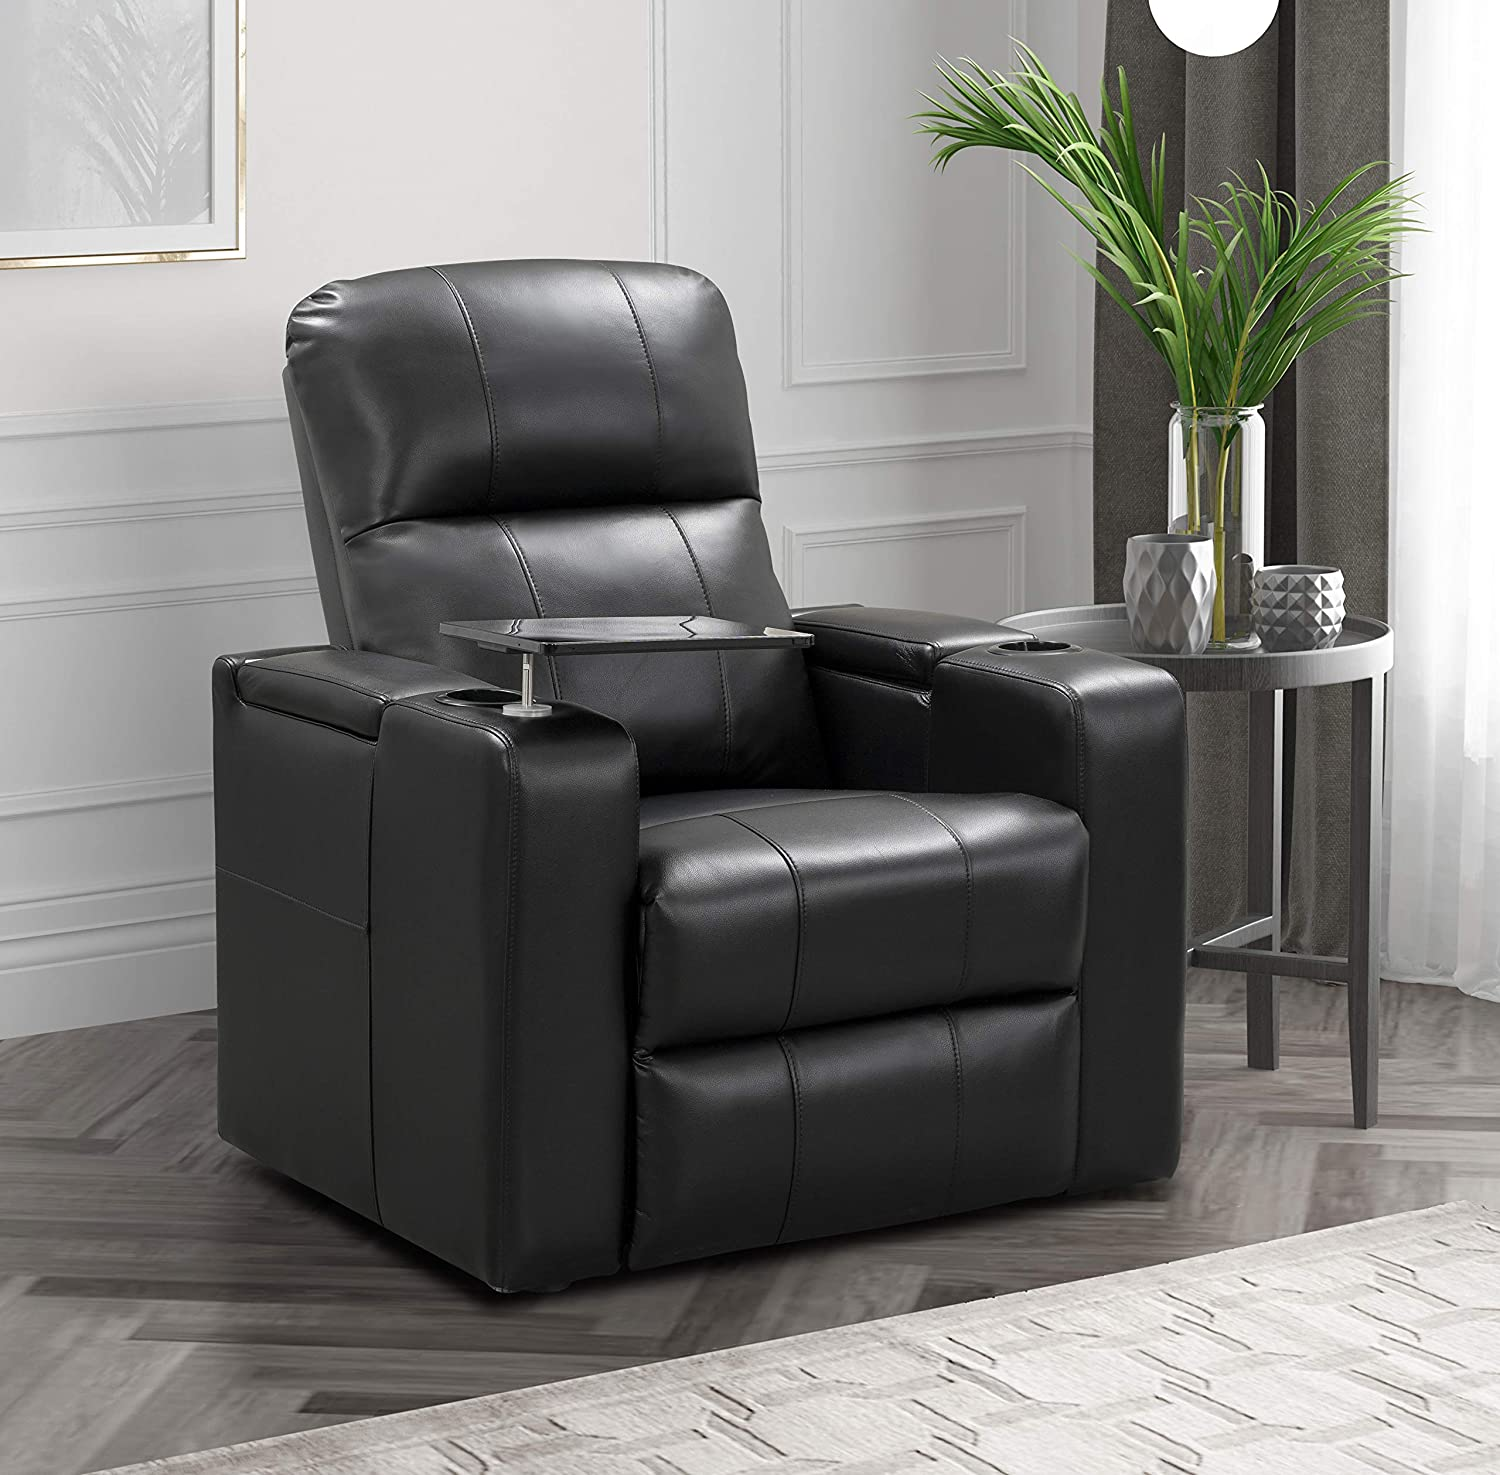 Abbyson Living Faux Leather Upholstered Power Recliner with Side Table Theater Armchair, Black